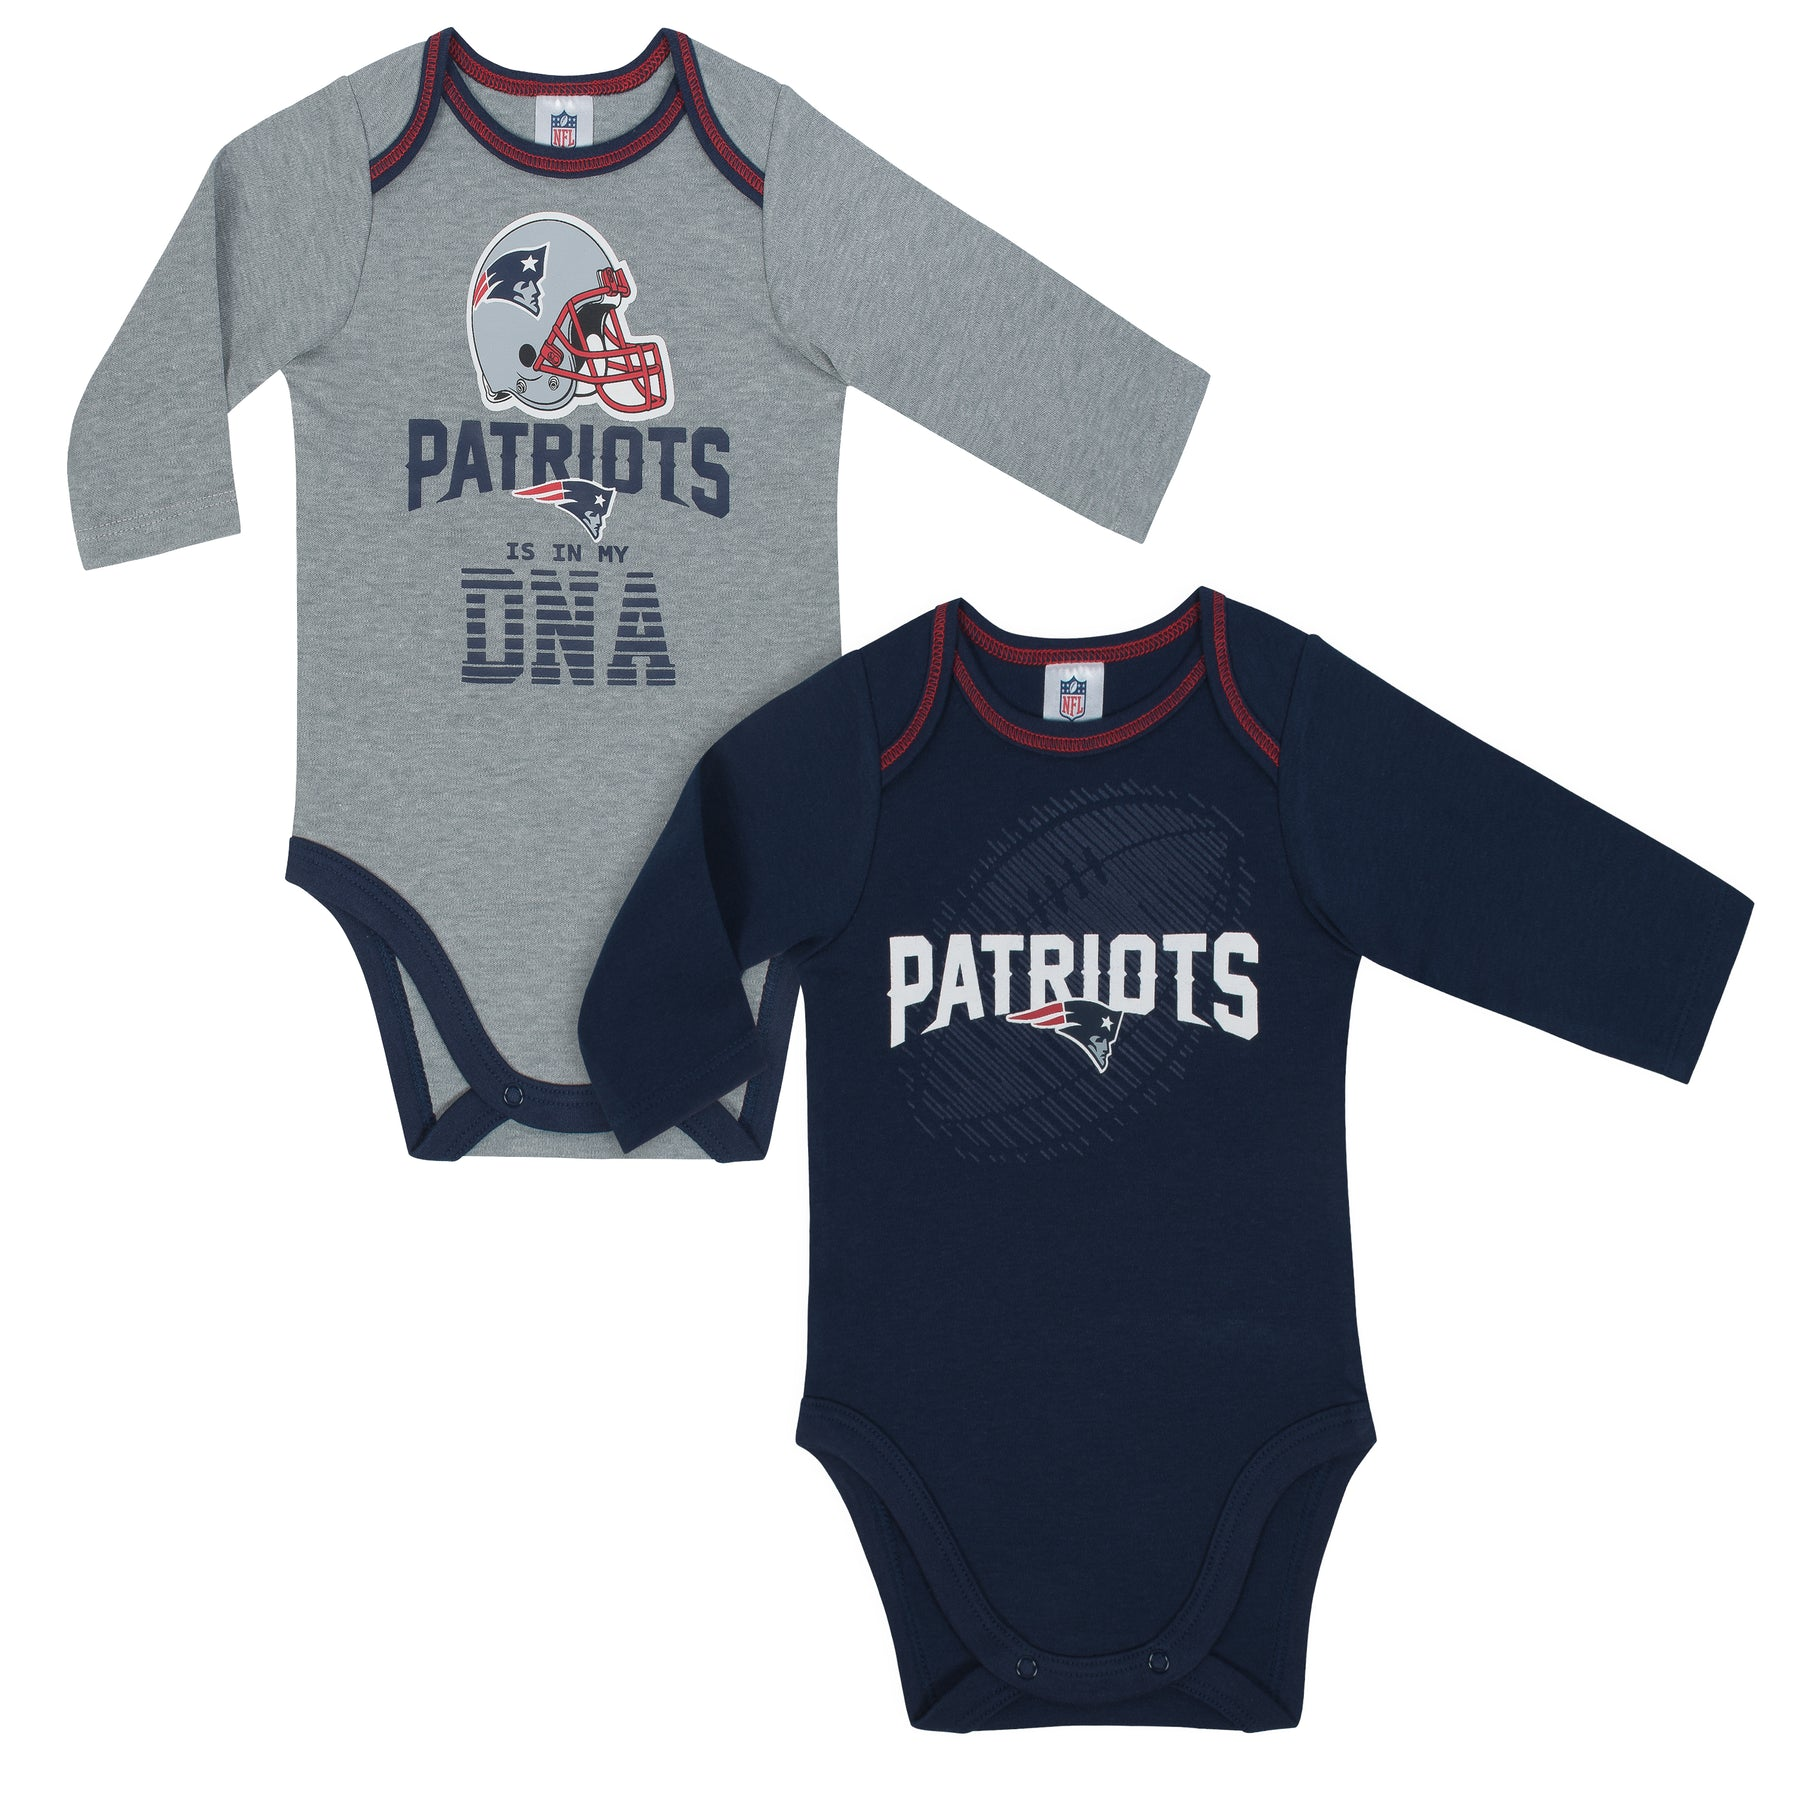 fff645fc7c6 Patriots Is In My DNA 2 Pack Long Sleeved Onesies – babyfans